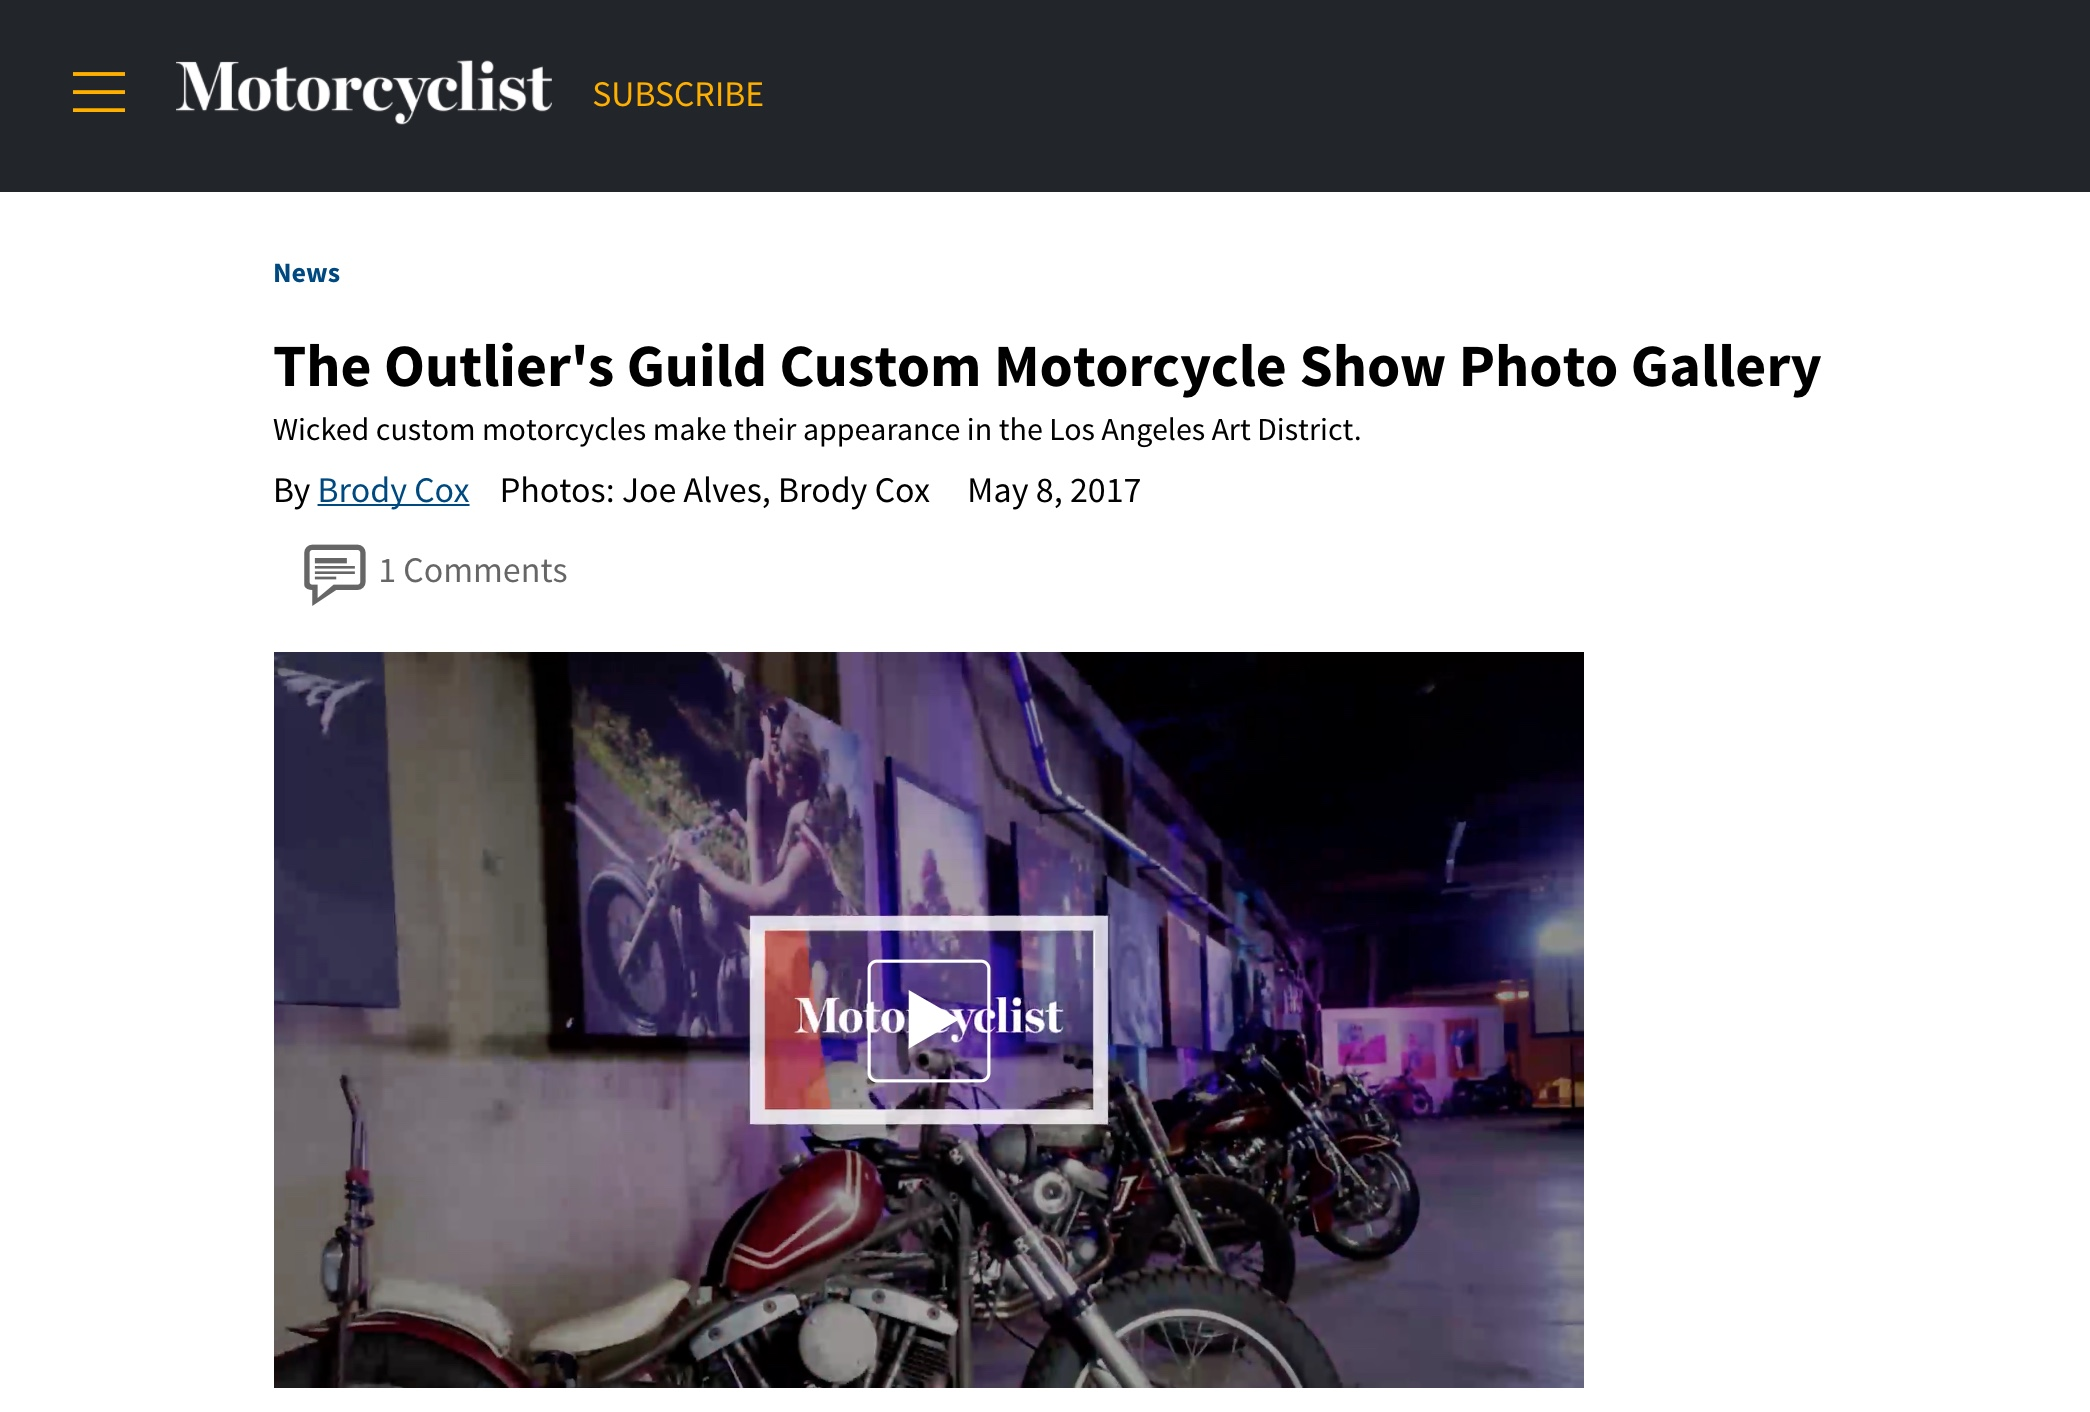 Event coverage from Motorcyclist Online